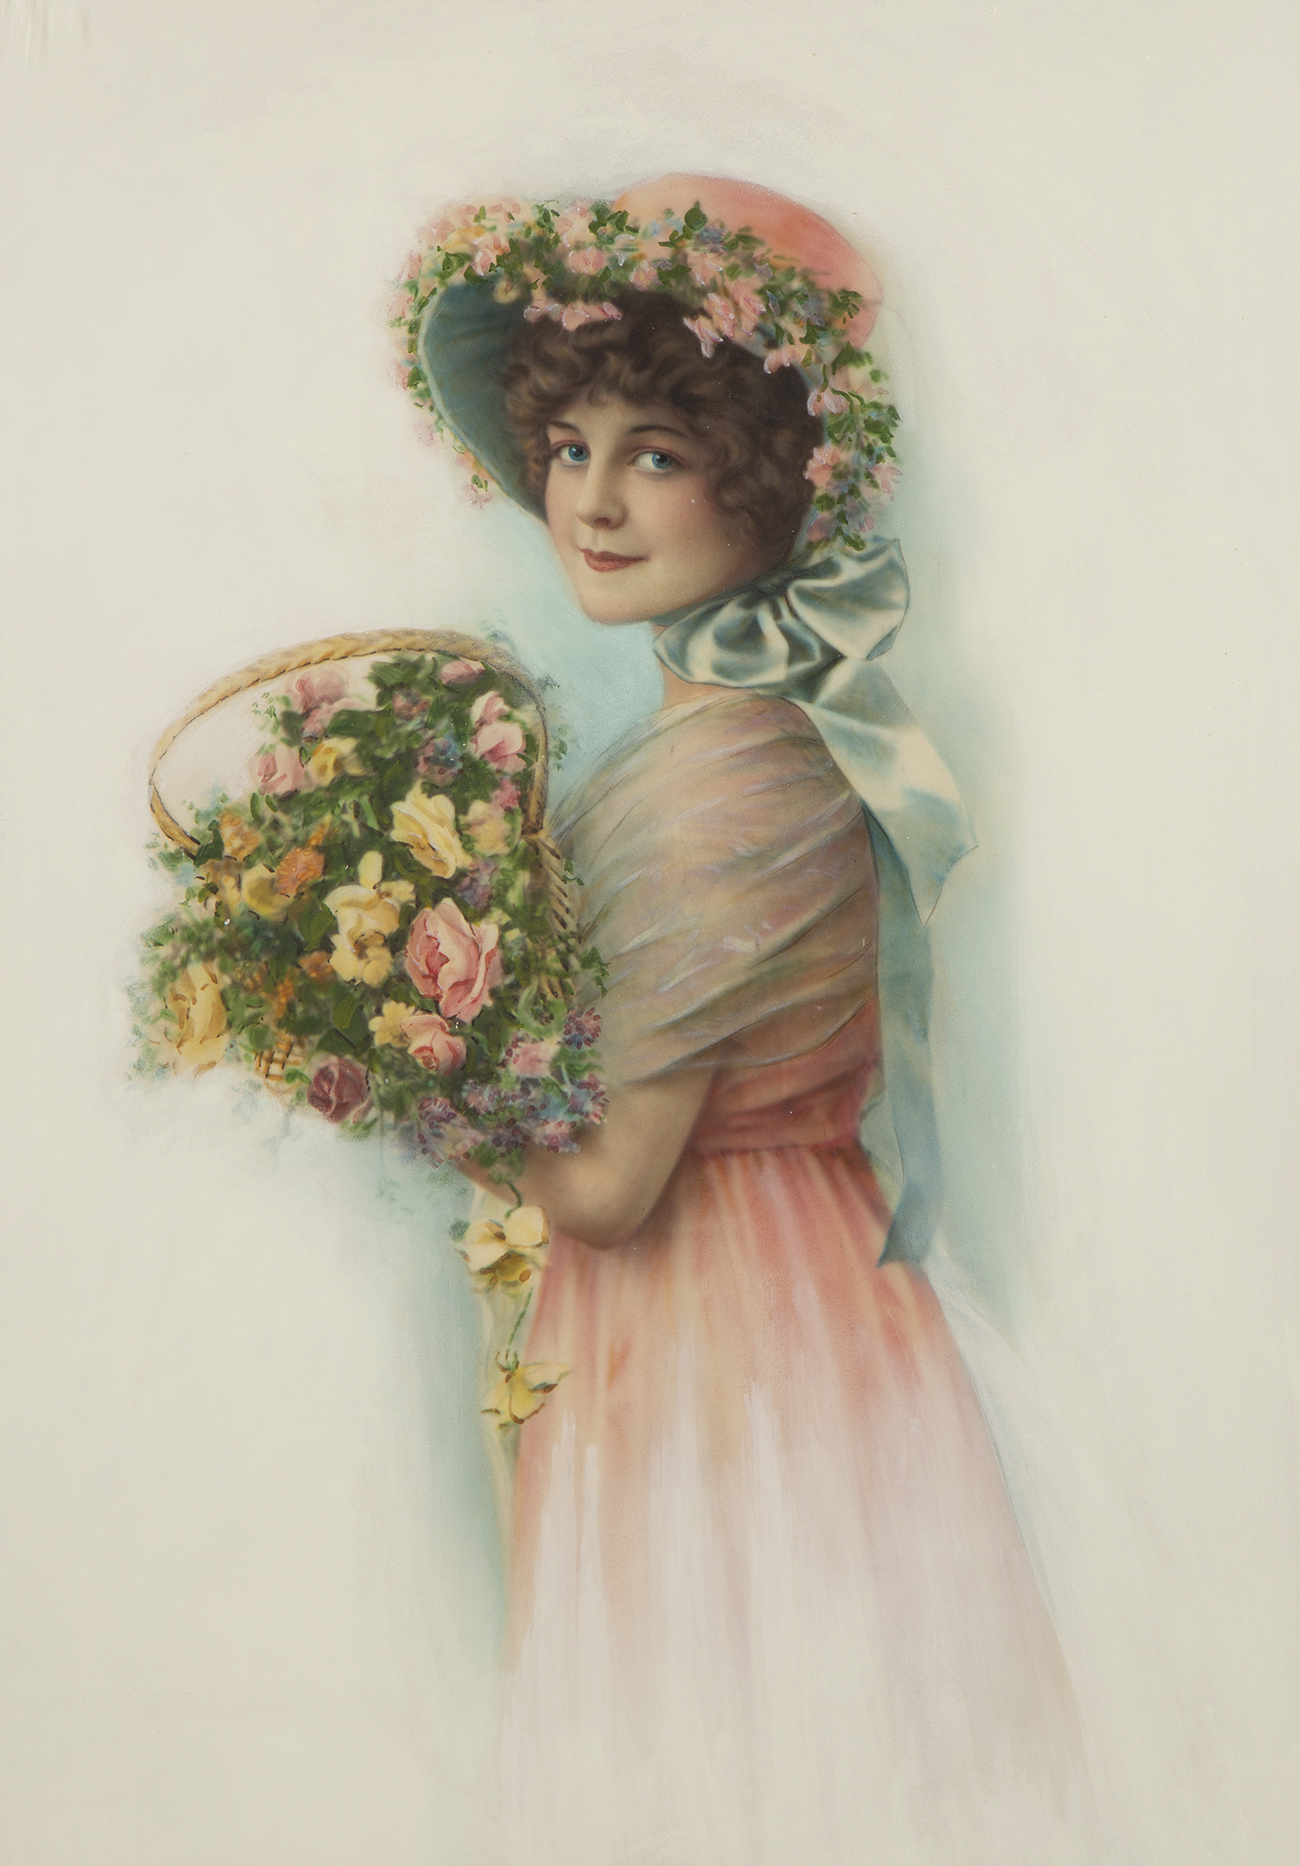 Full view of mixed media on illustration board featuring an Edwardian maiden holding a bouquet of flowers